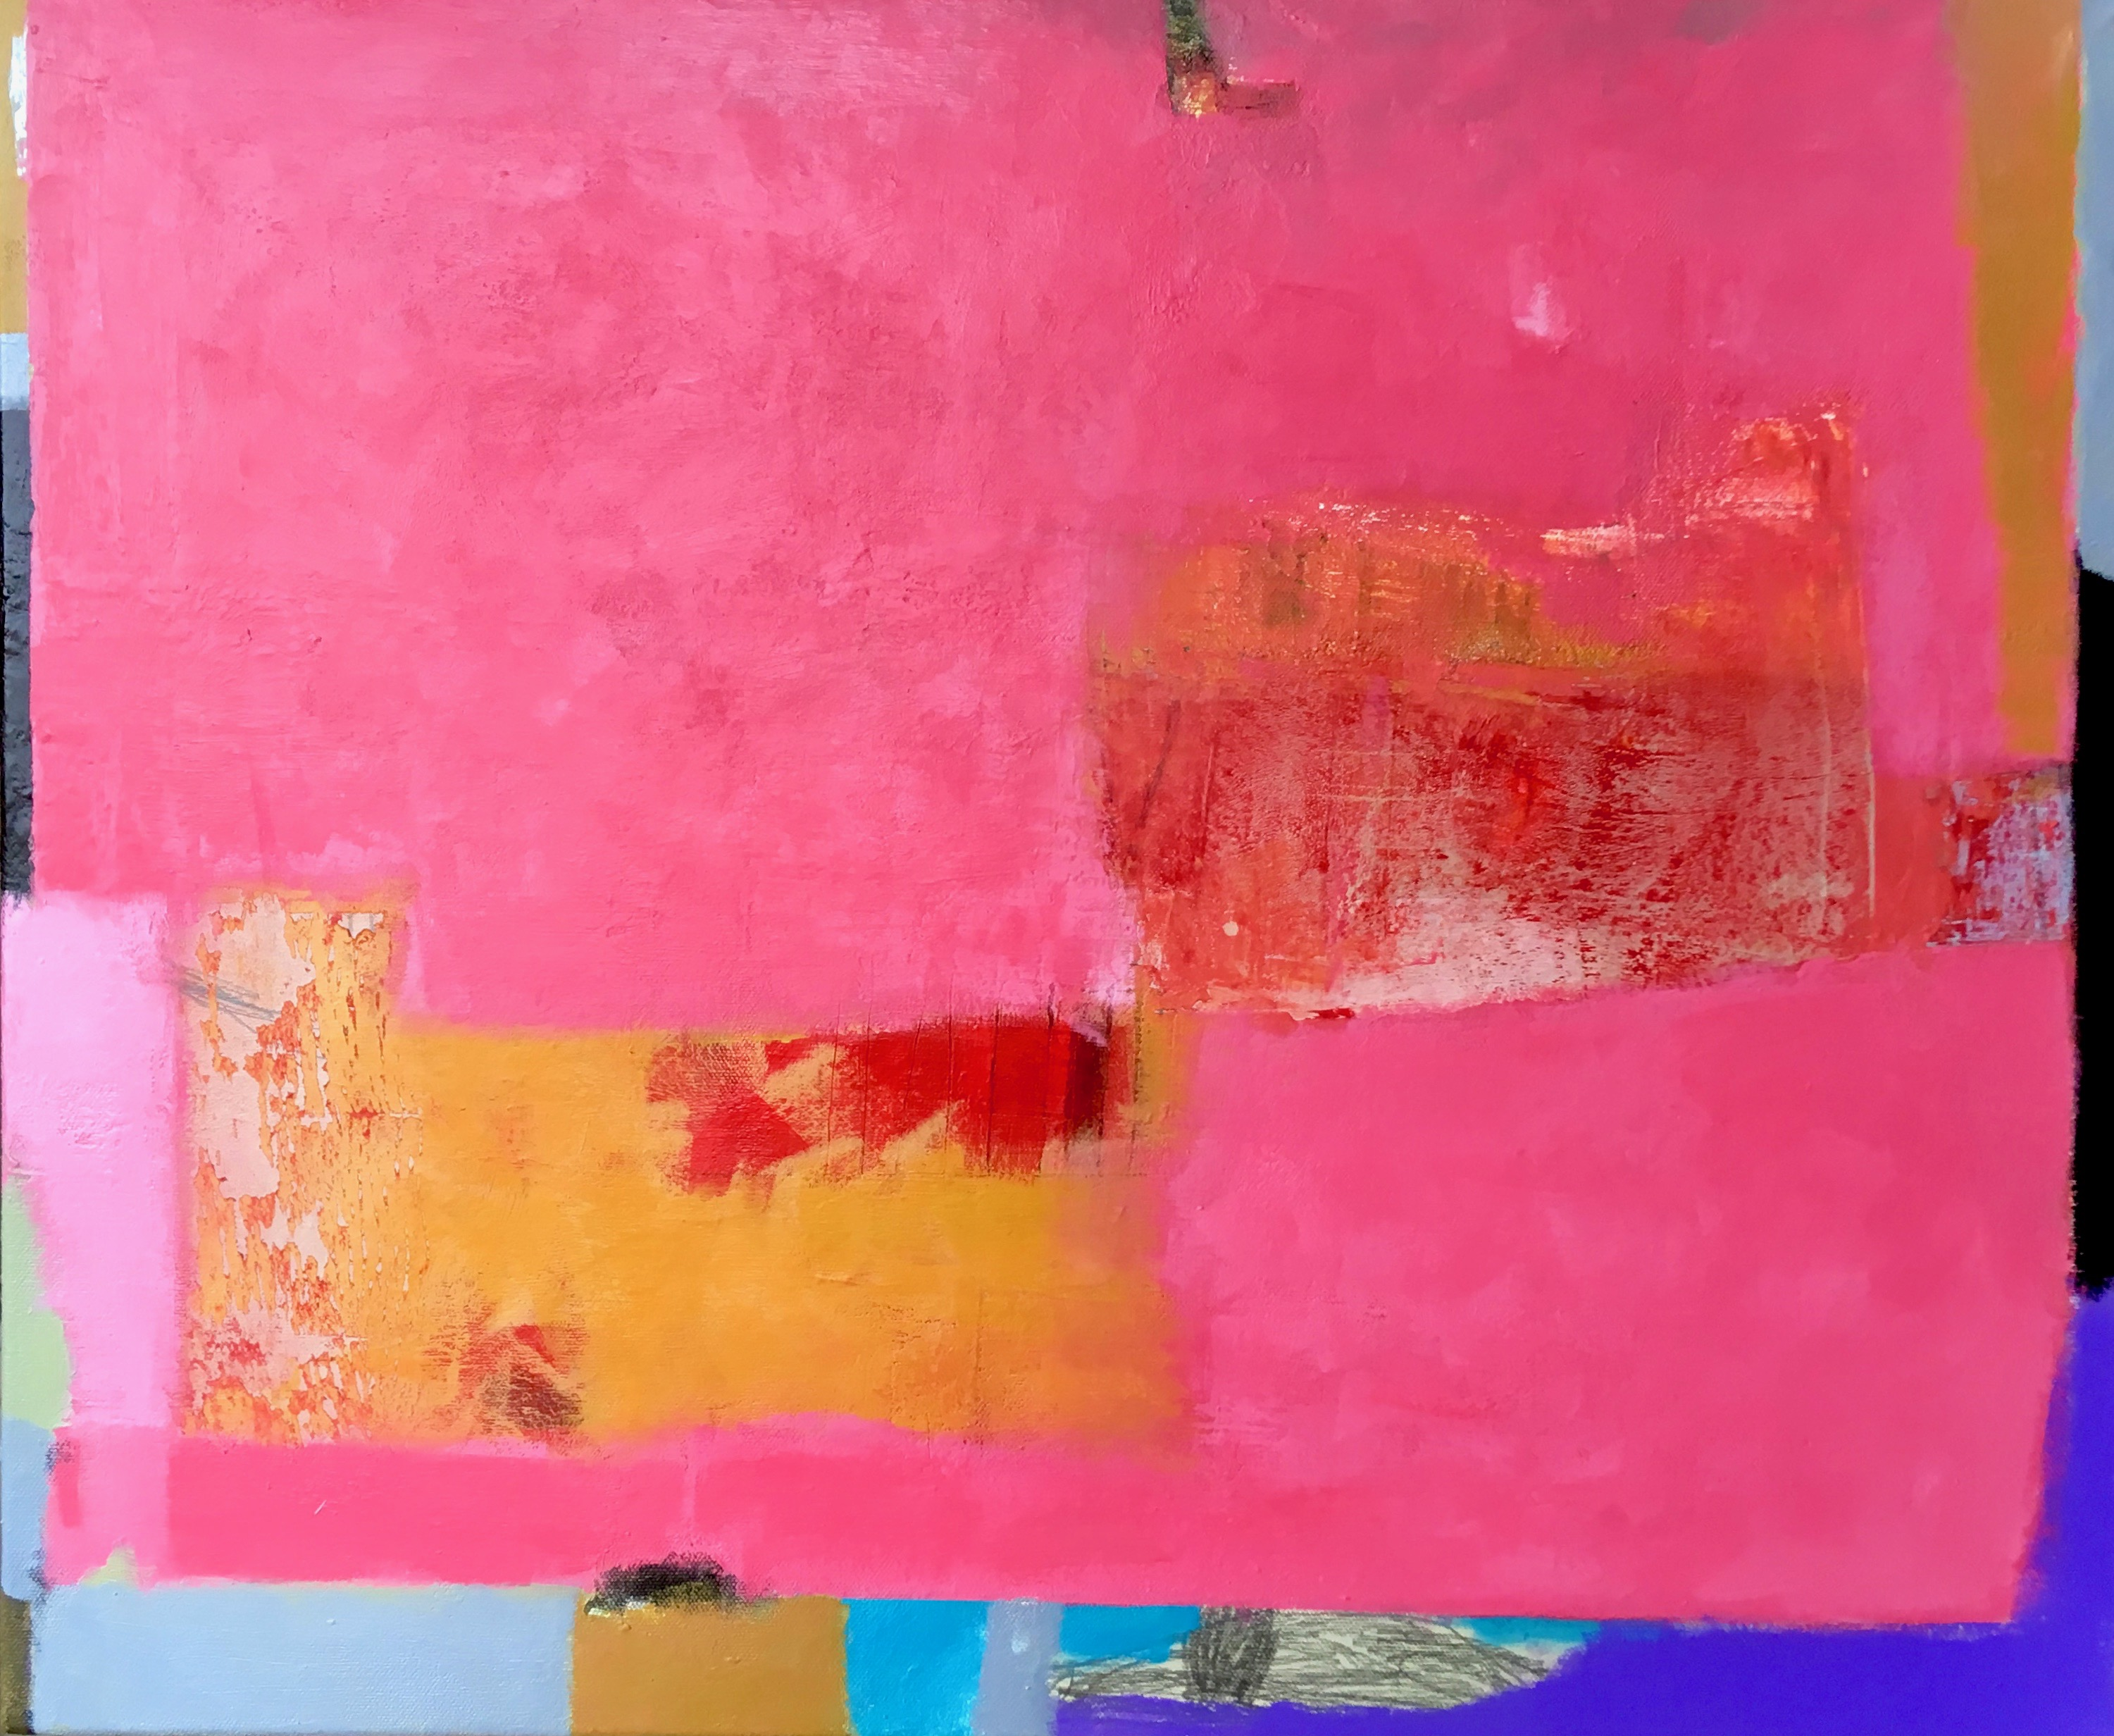 Composition in Pink